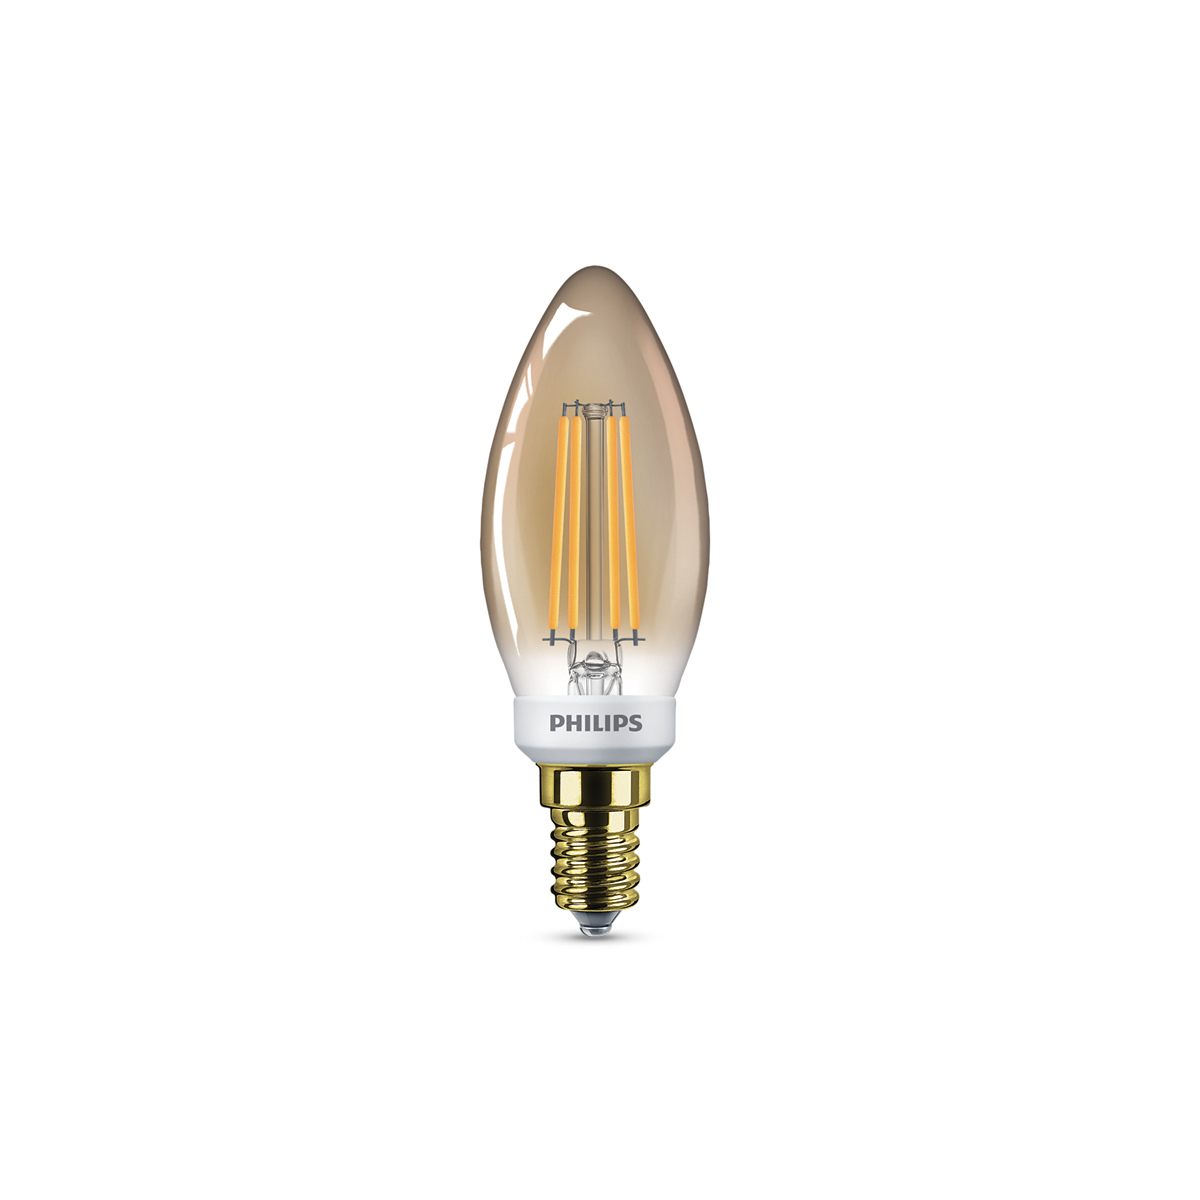 Lampadine decorative LED a oliva e a goccia